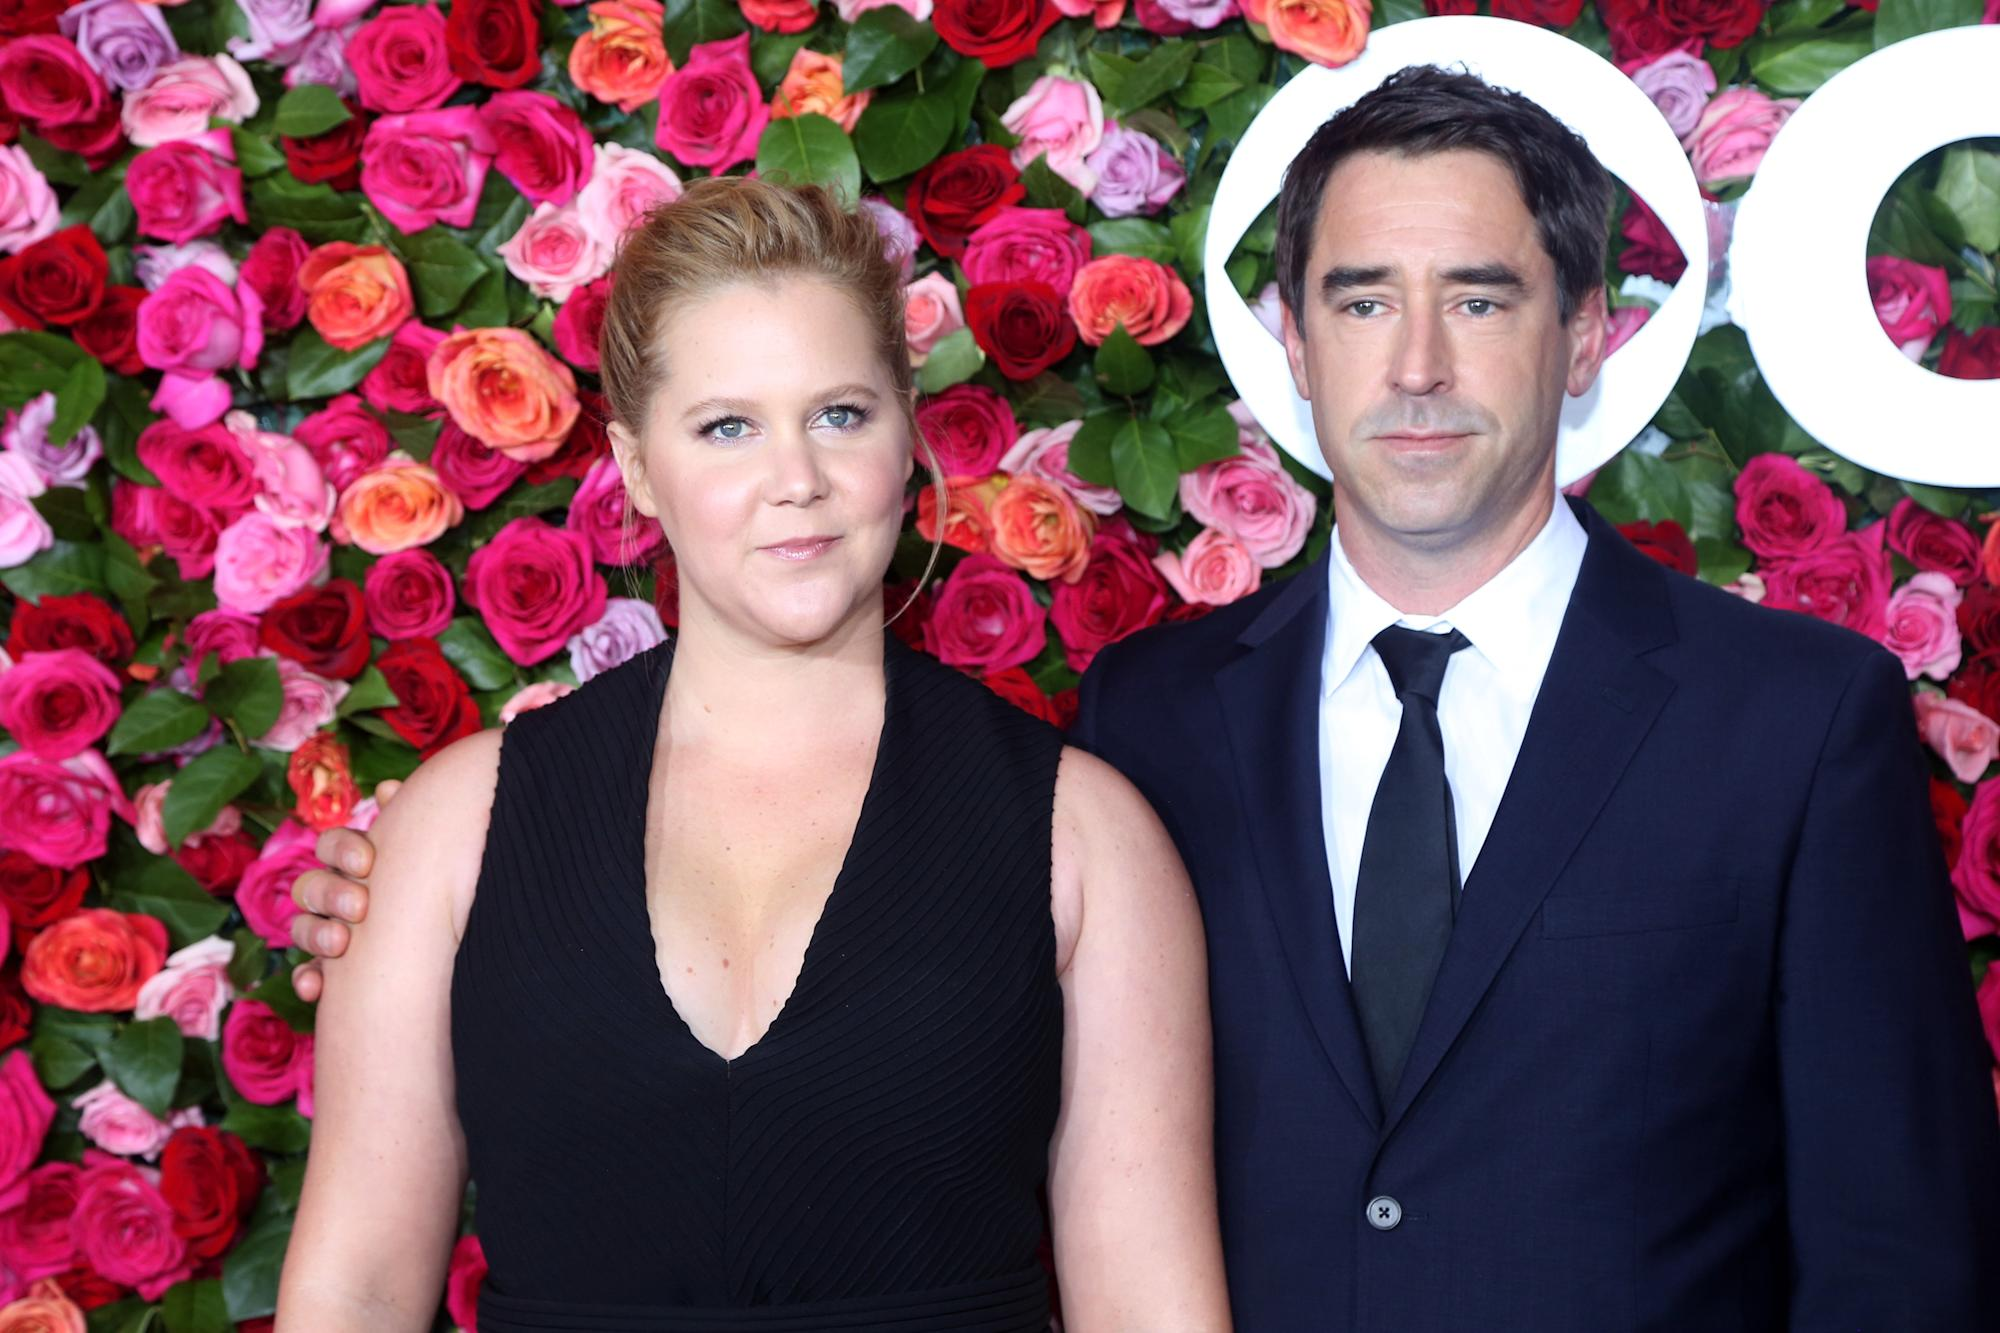 Amy Schumer gets 'emotional' about husband Chris Fischer on their son's 2nd birthday